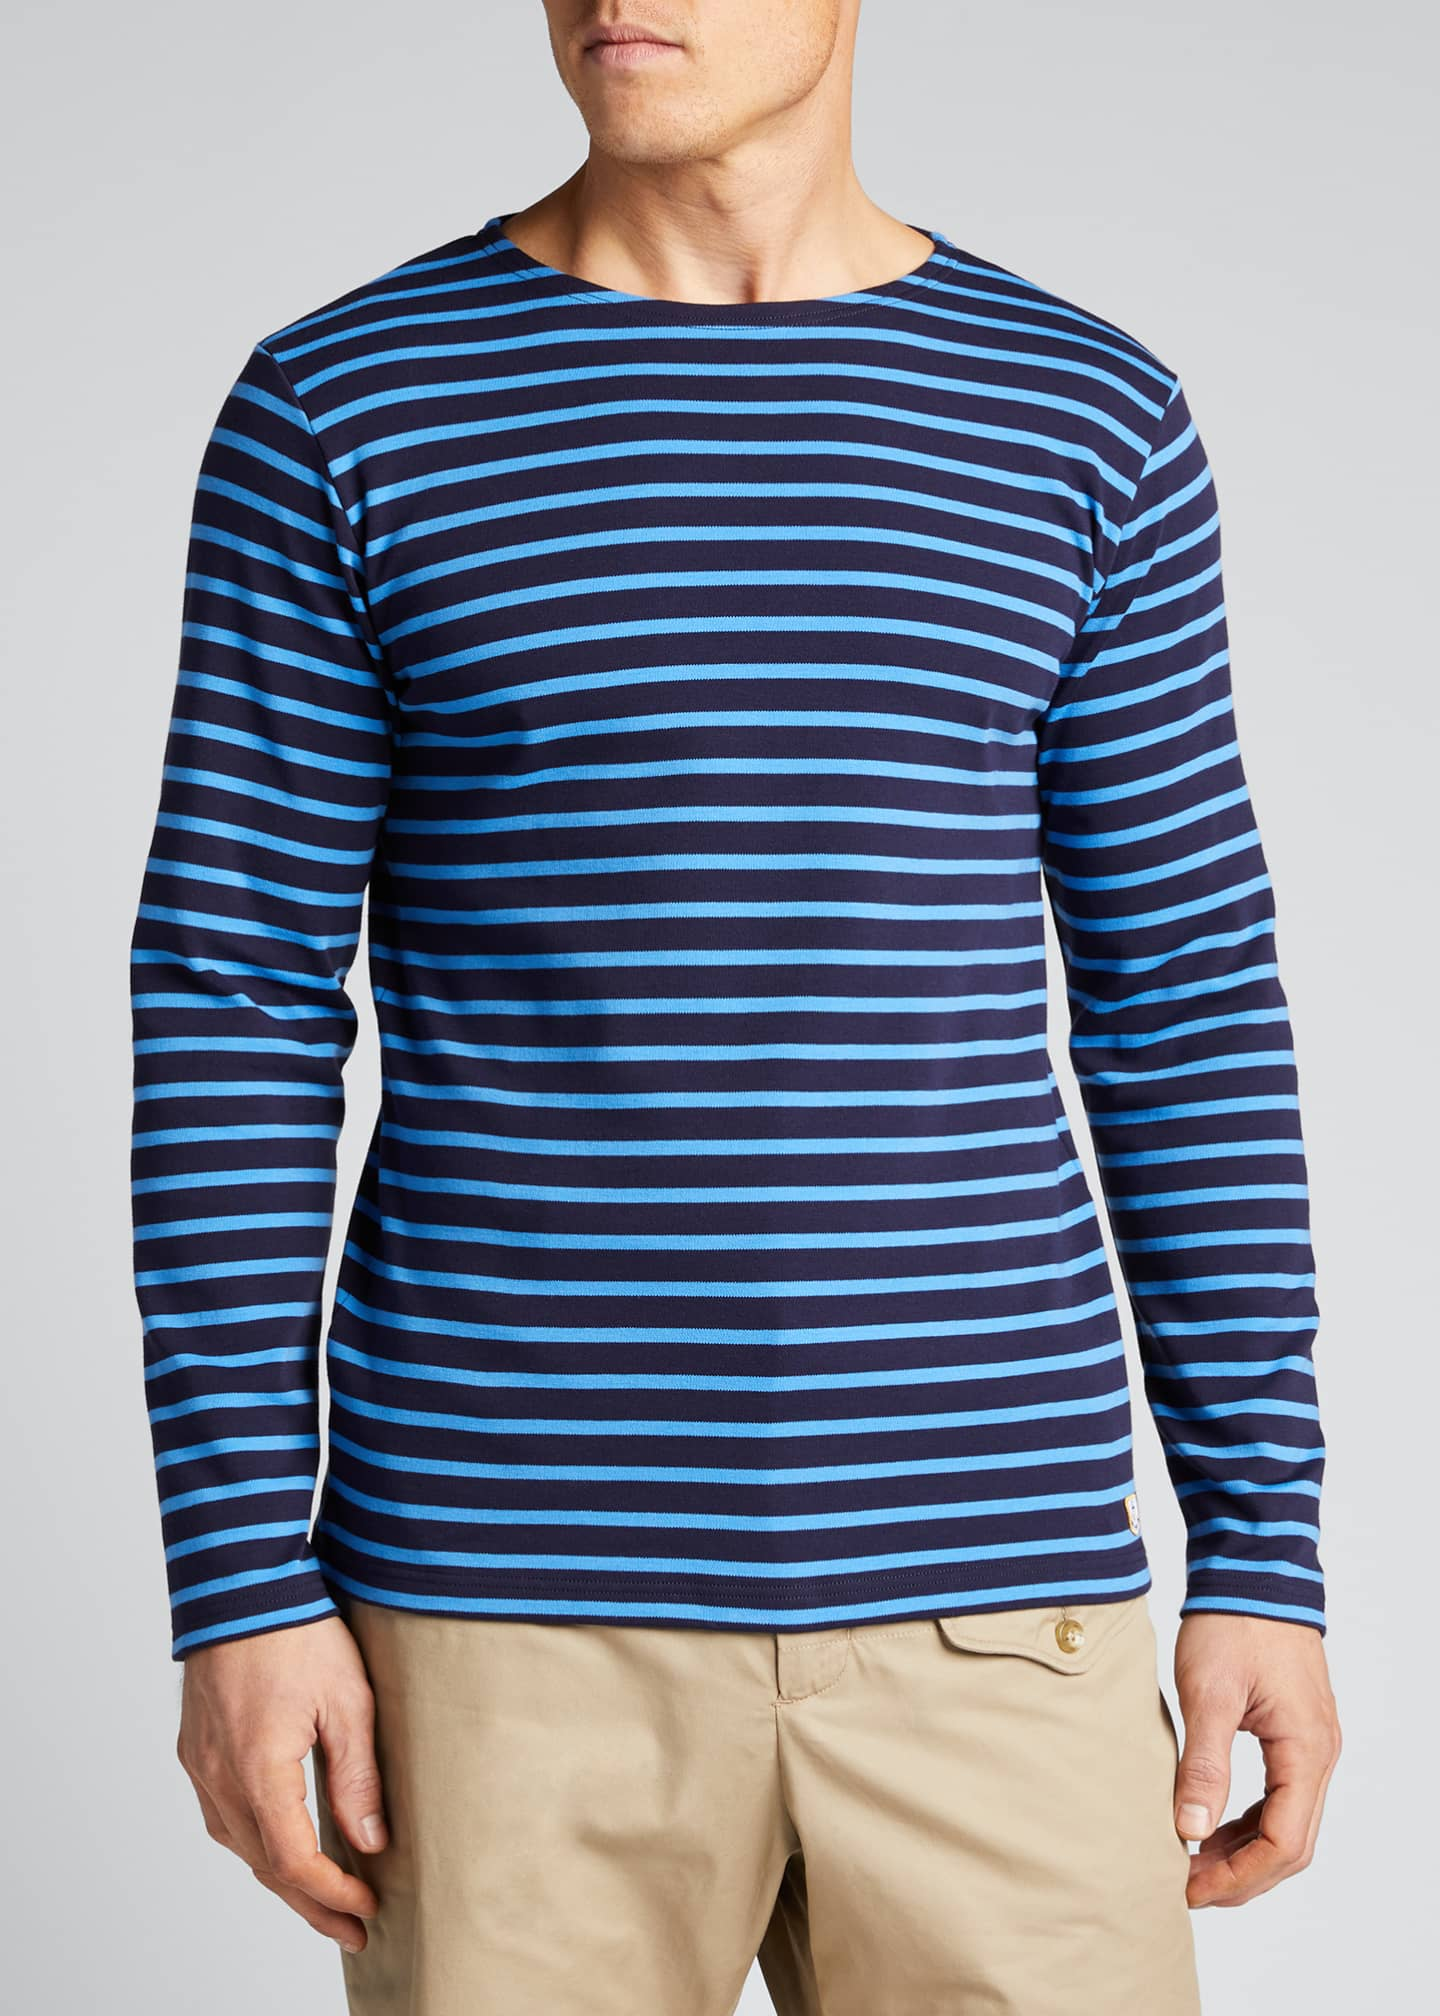 Image 3 of 5: Men's Marinire Heritage Striped Long-Sleeve T-Shirt